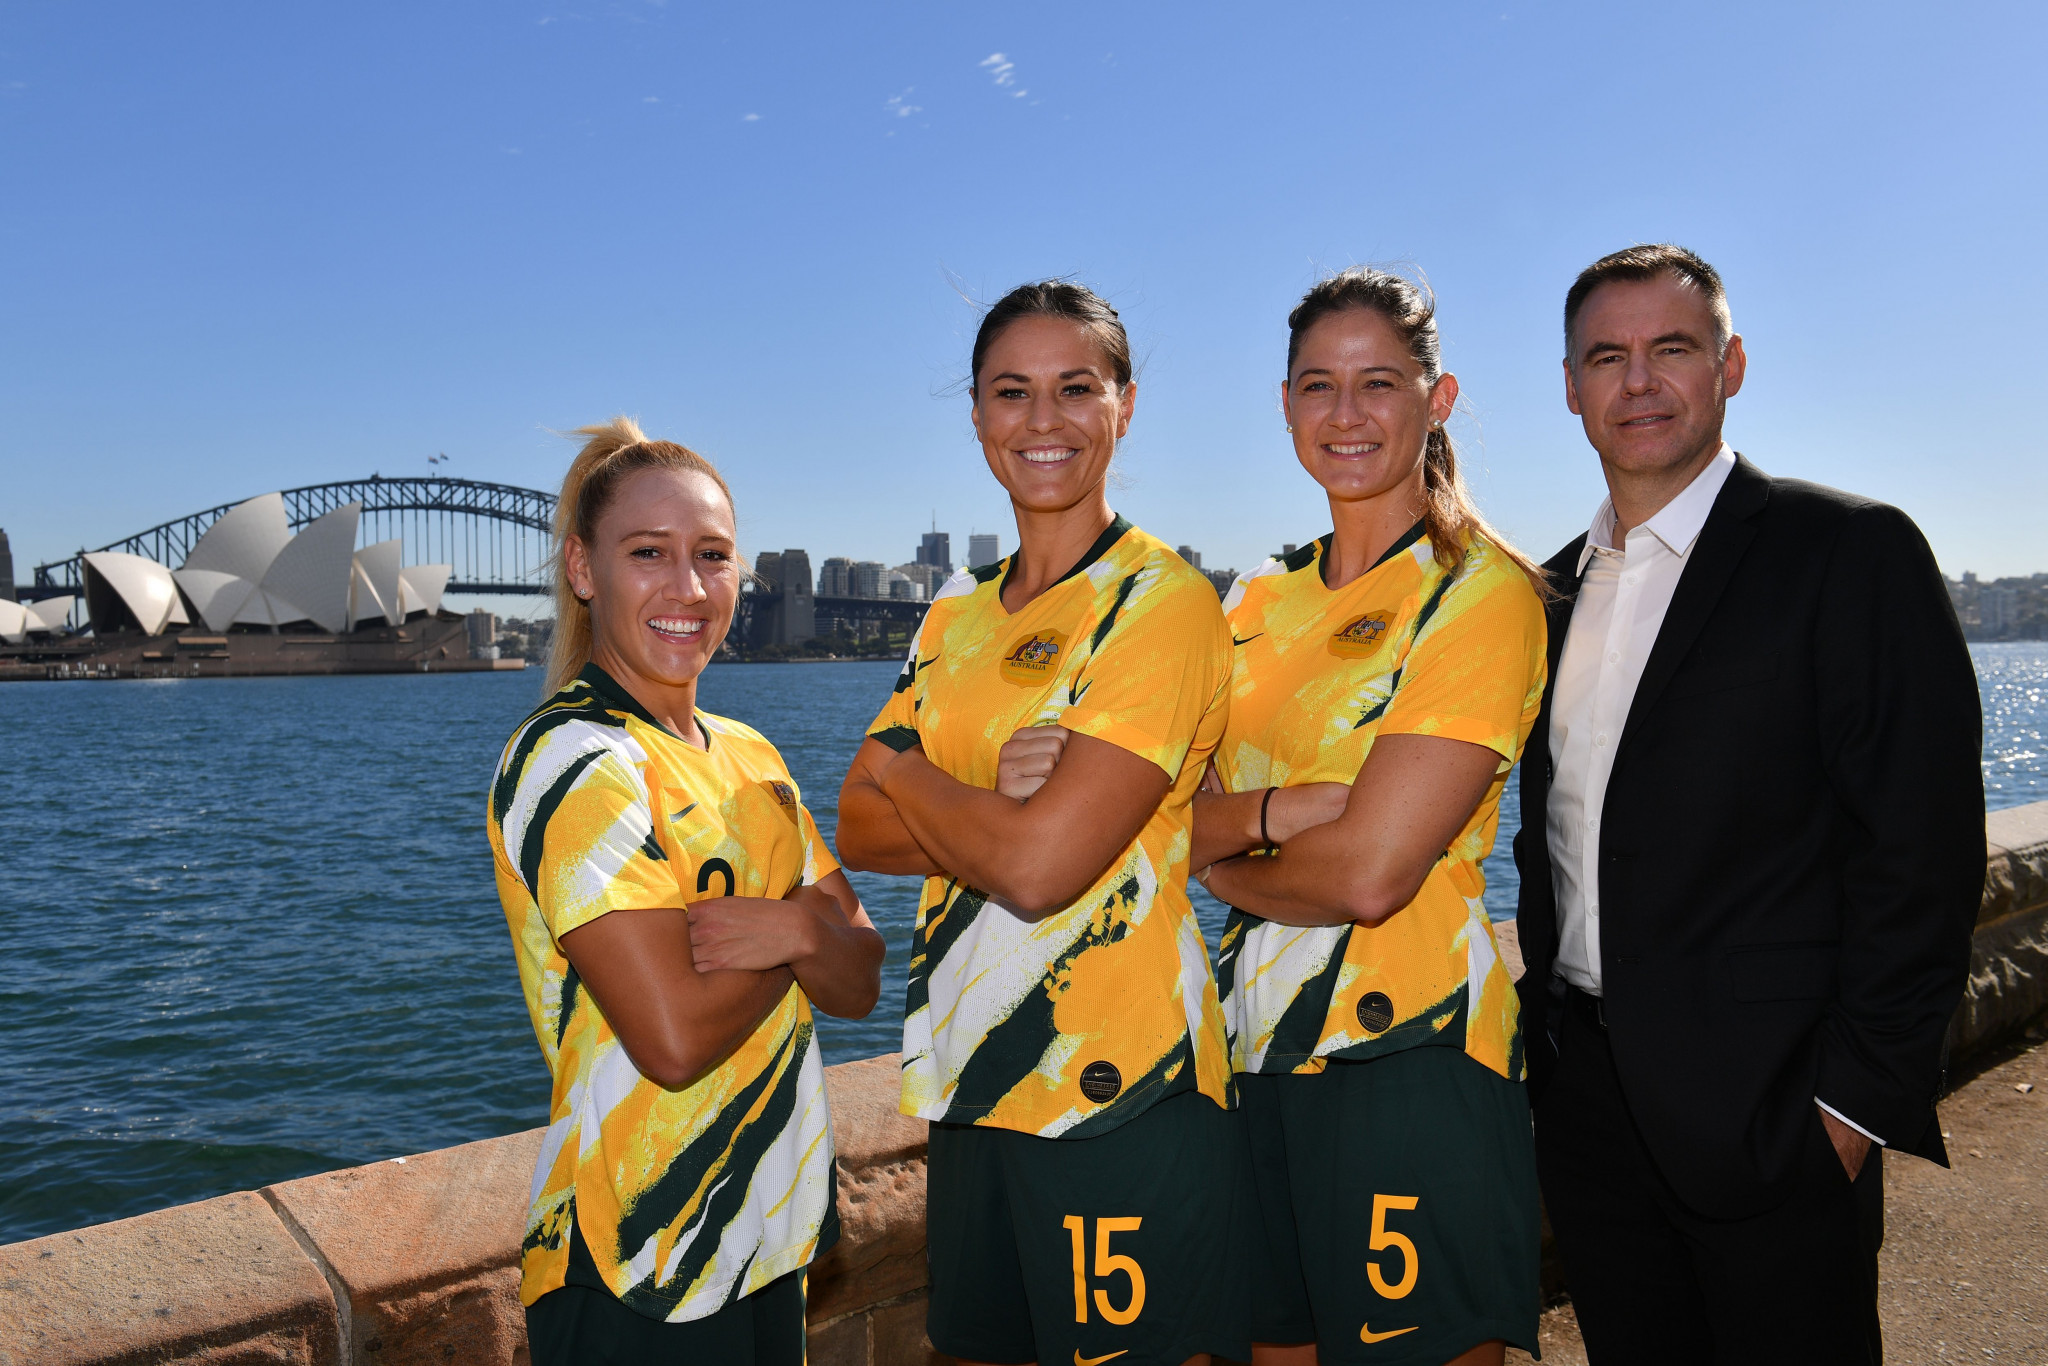 Milicic confirmed as coach of Australia women's football team for Tokyo 2020 qualification campaign